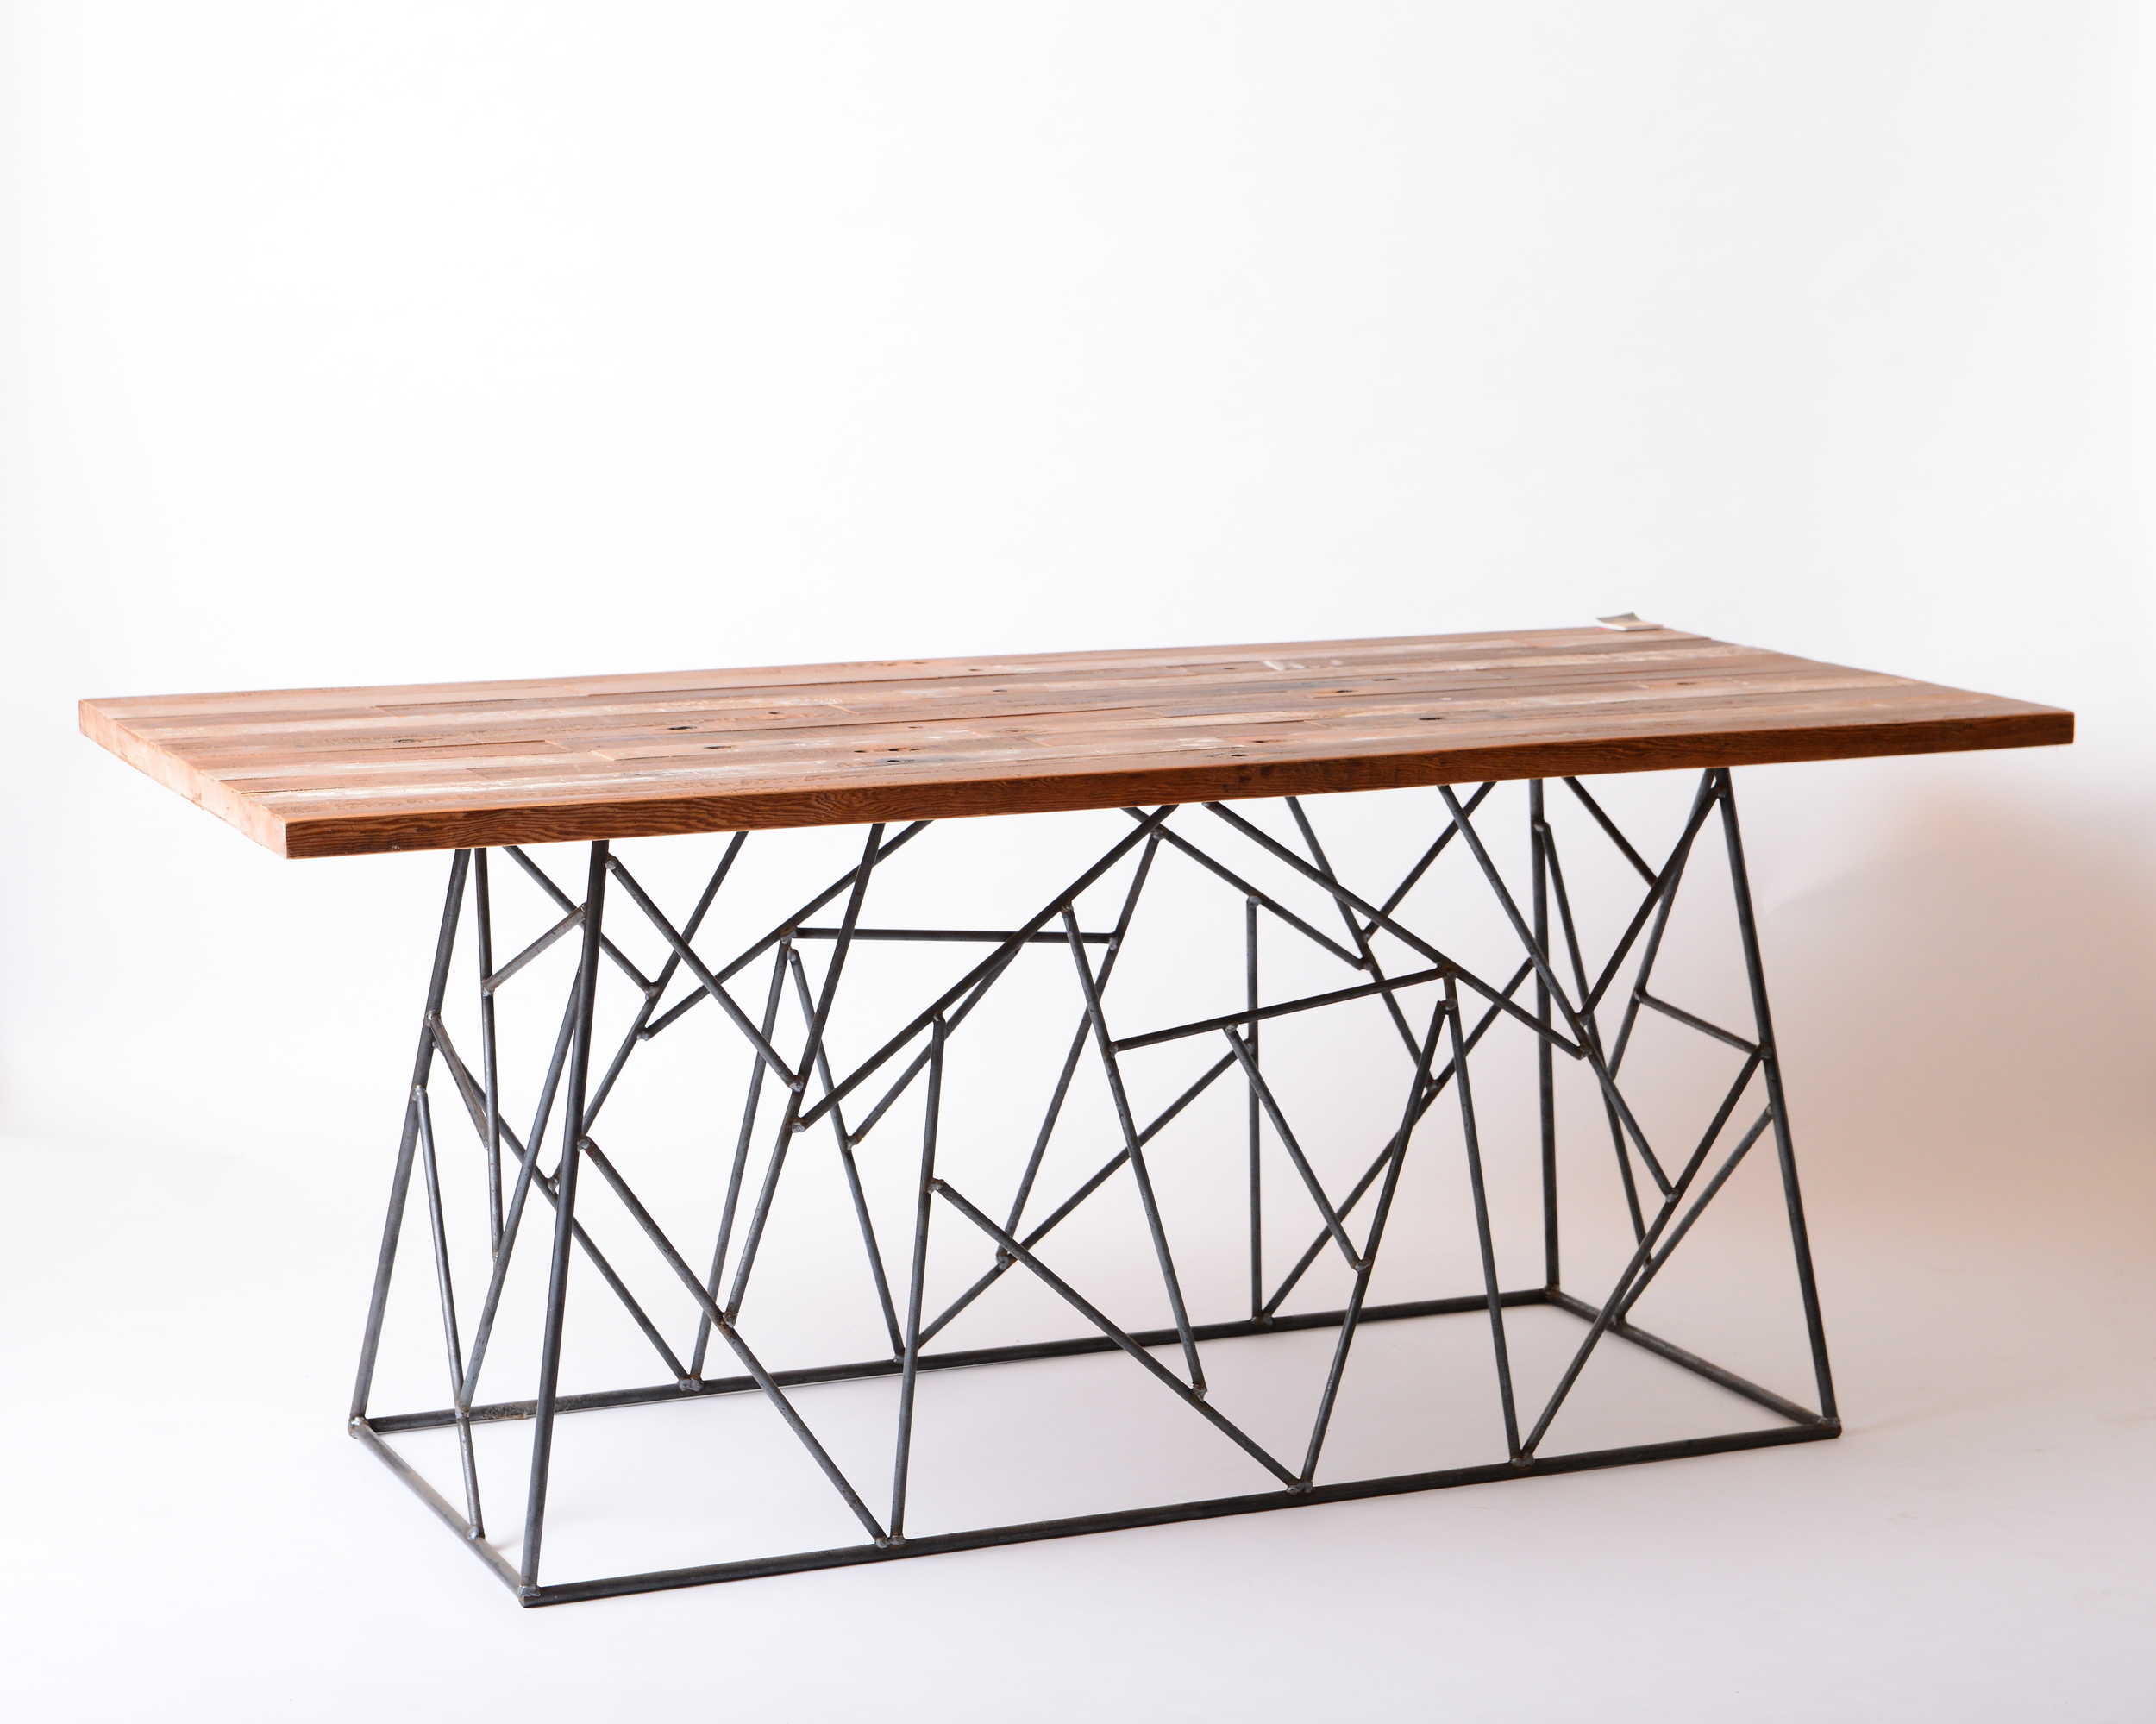 Space table 停產